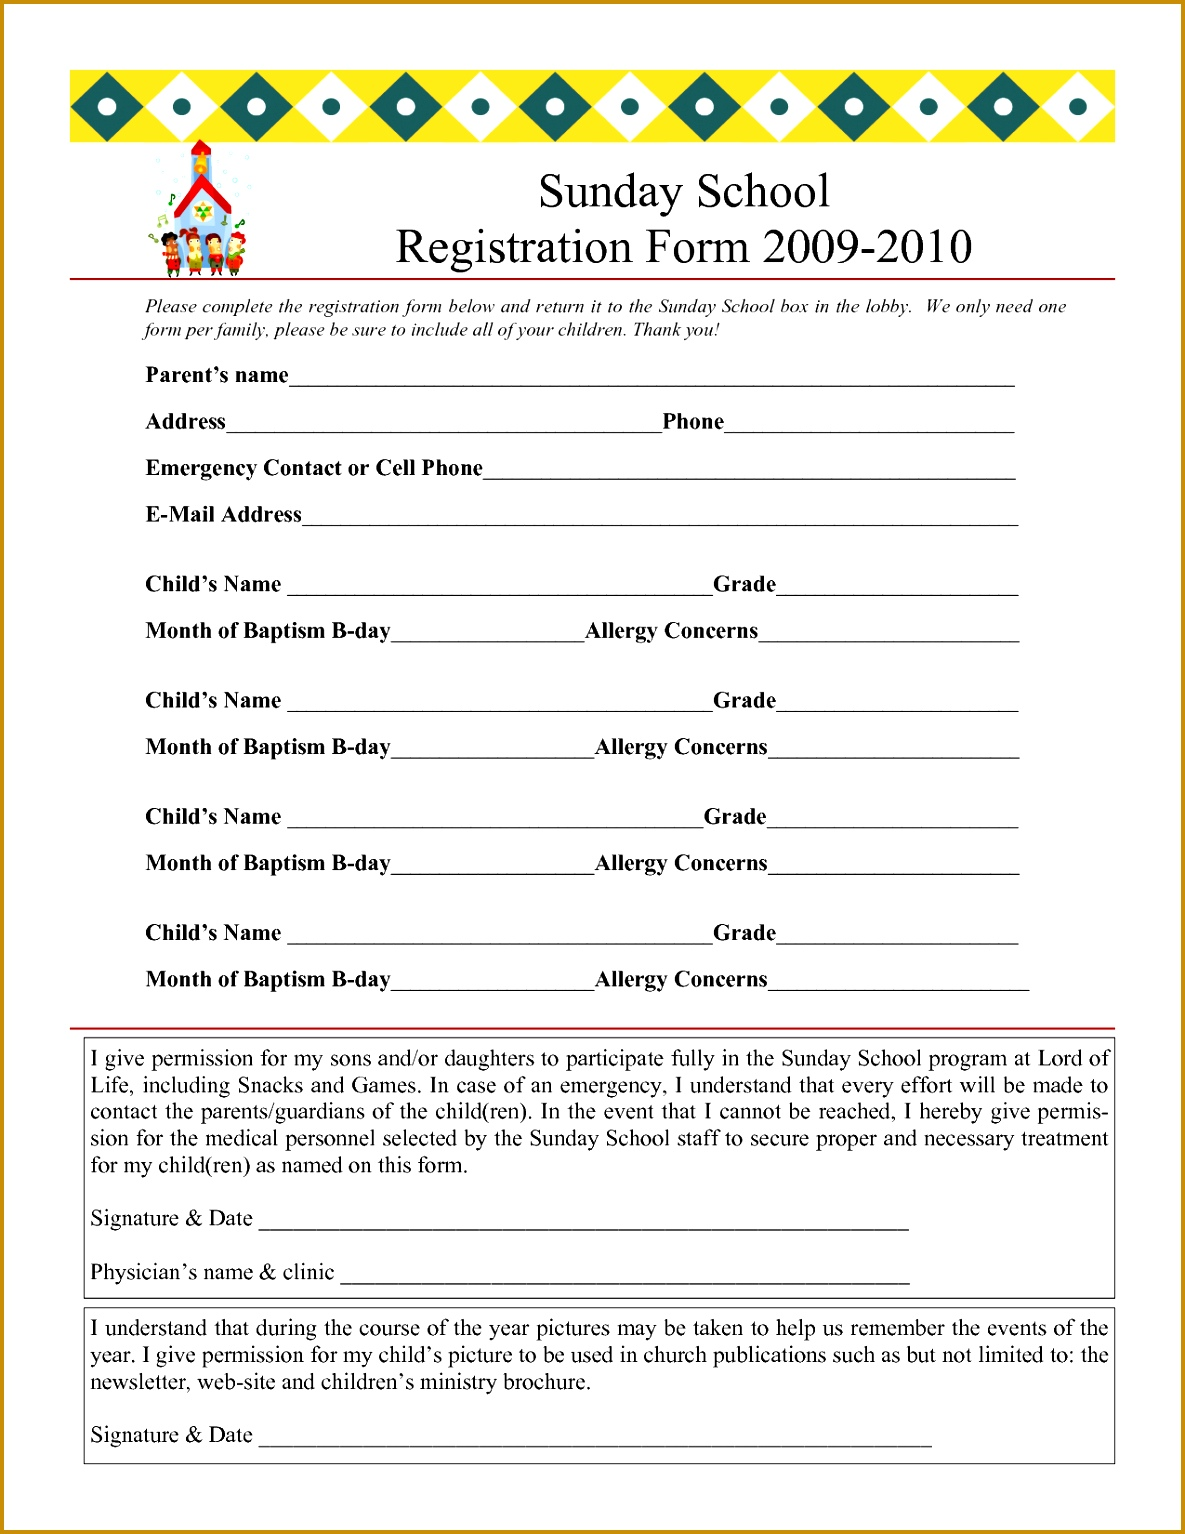 Sunday School Registration Form 2009 2010 15341185